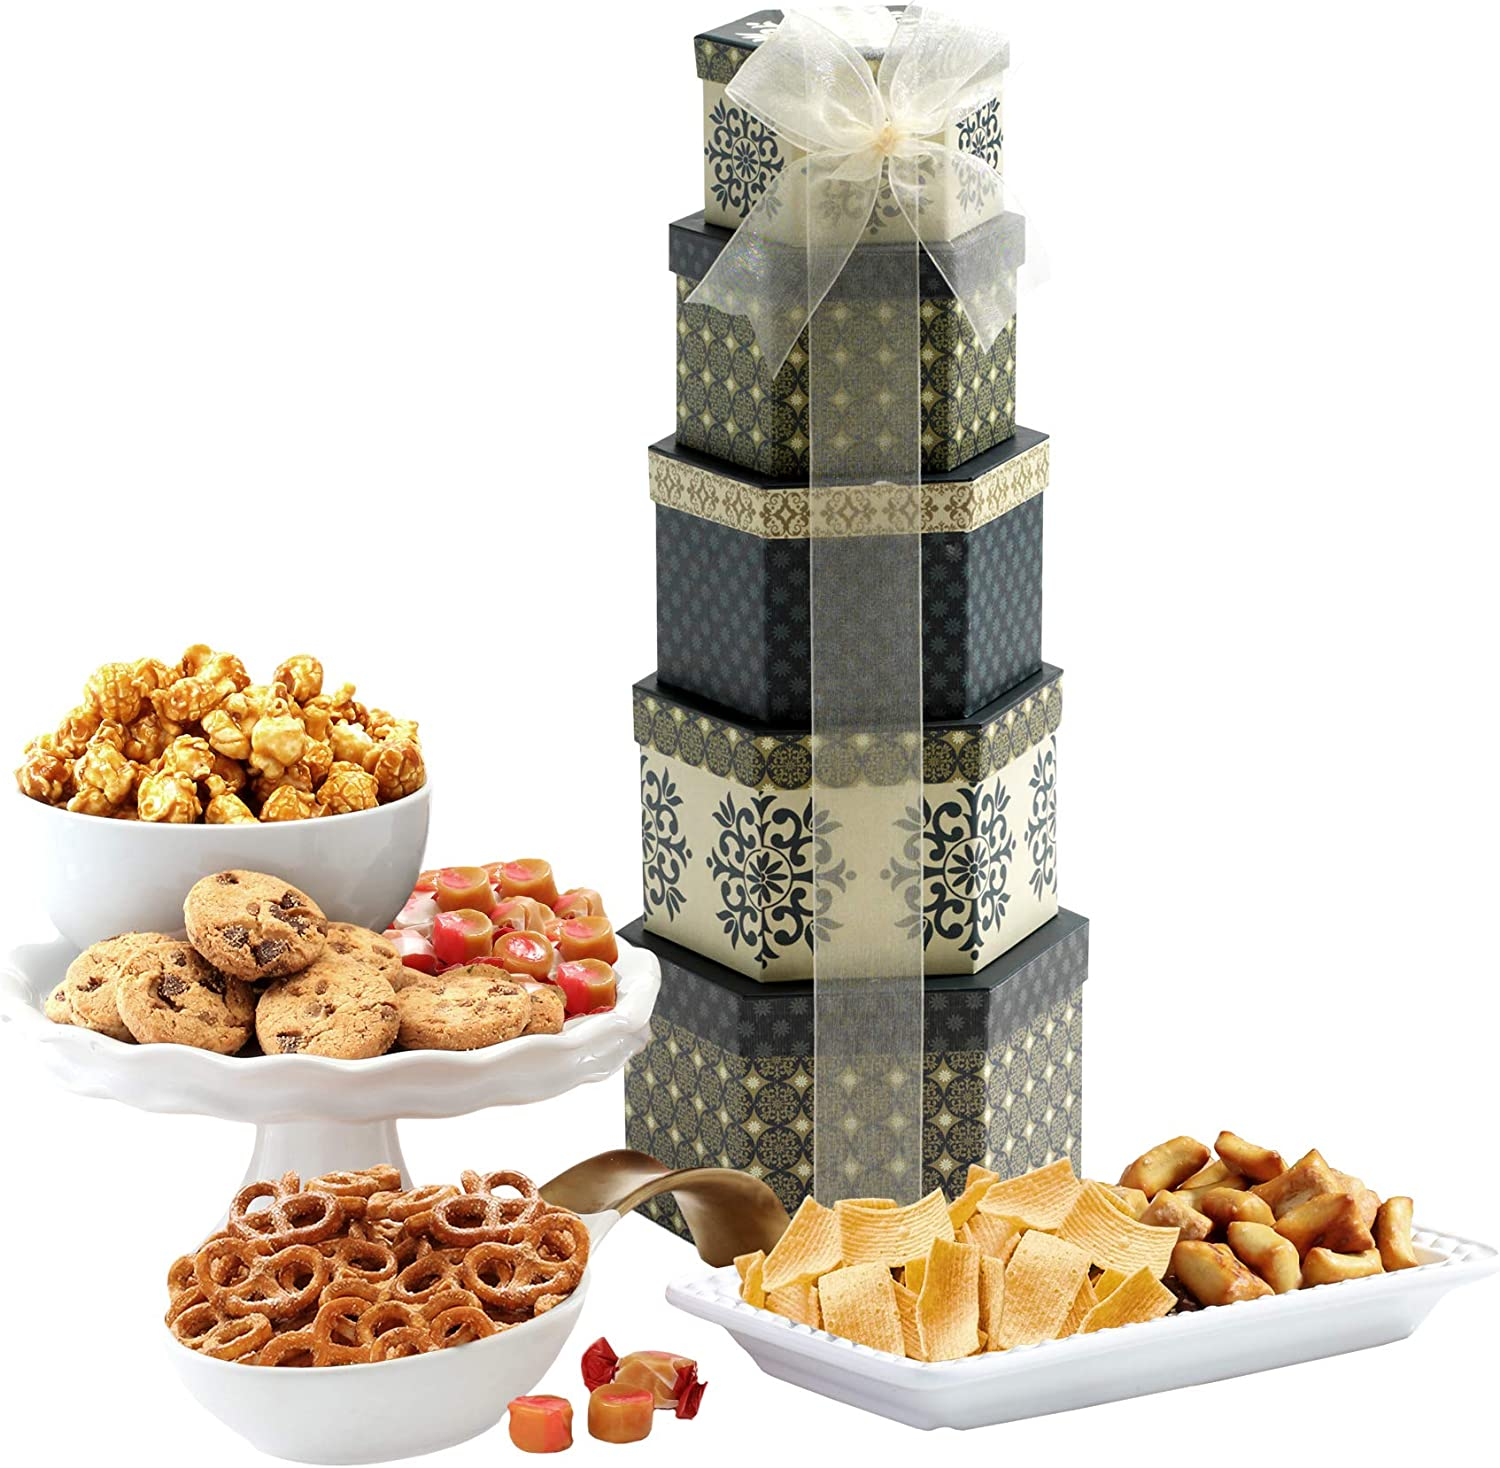 Savory Sweets Thinking of You Gift Tower : Gourmet Snacks And Hors Doeuvres Gifts : Grocery & Gourmet Food